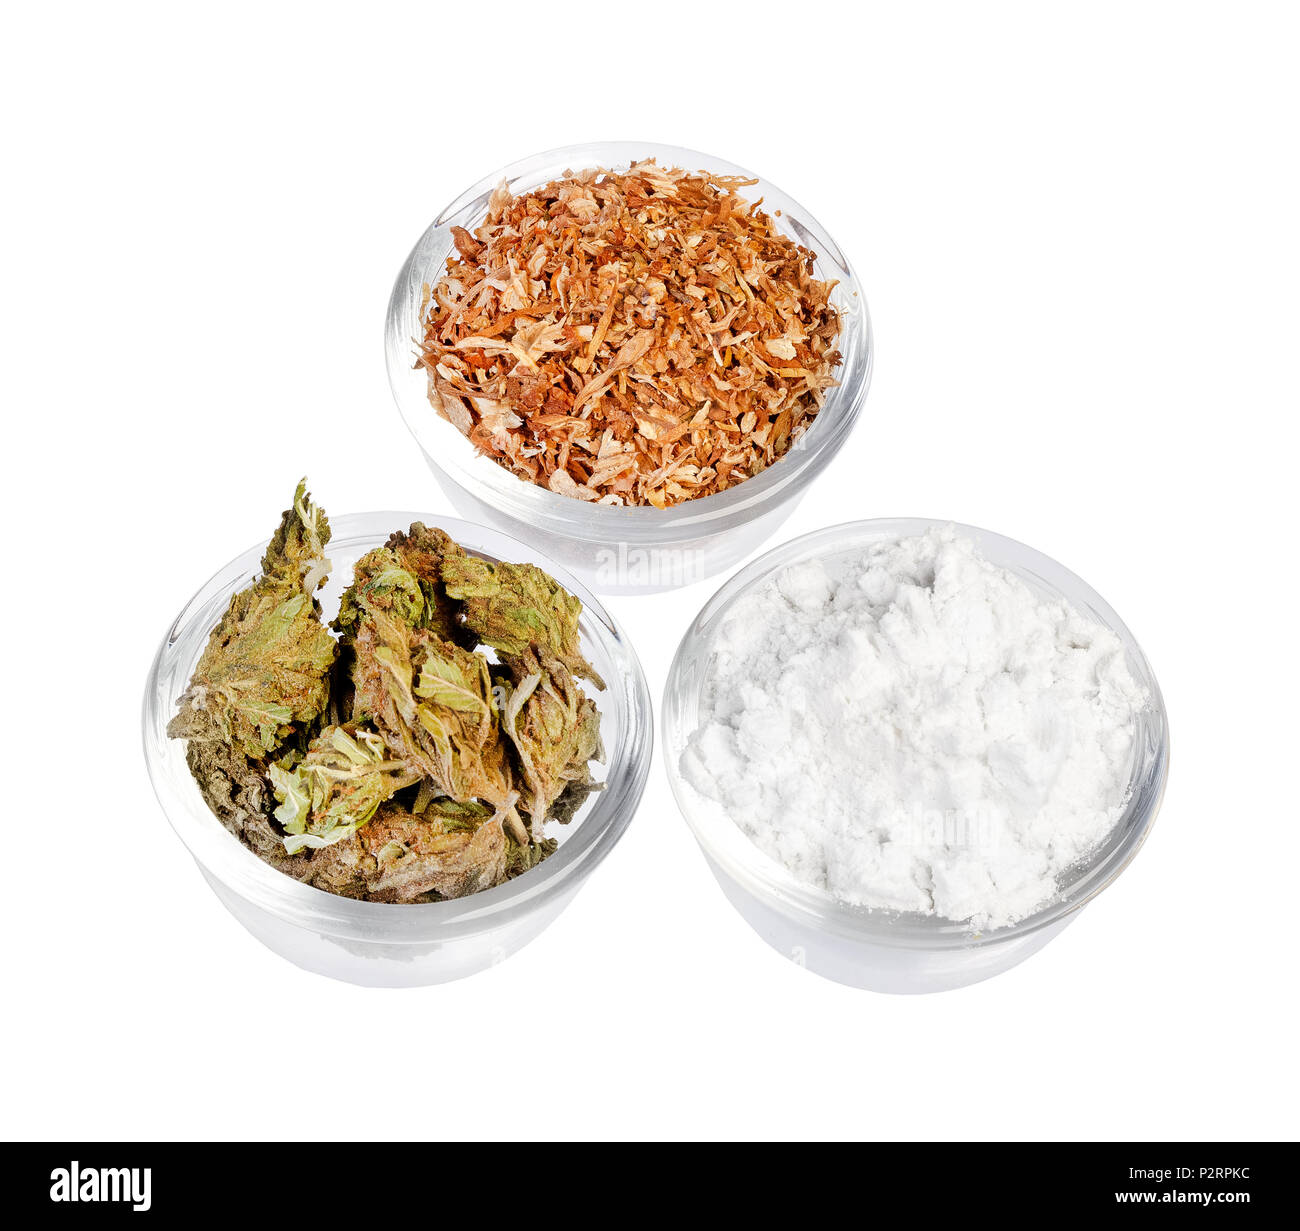 Plates with cocaine, cannabis tobacco isolated on background - Stock Image